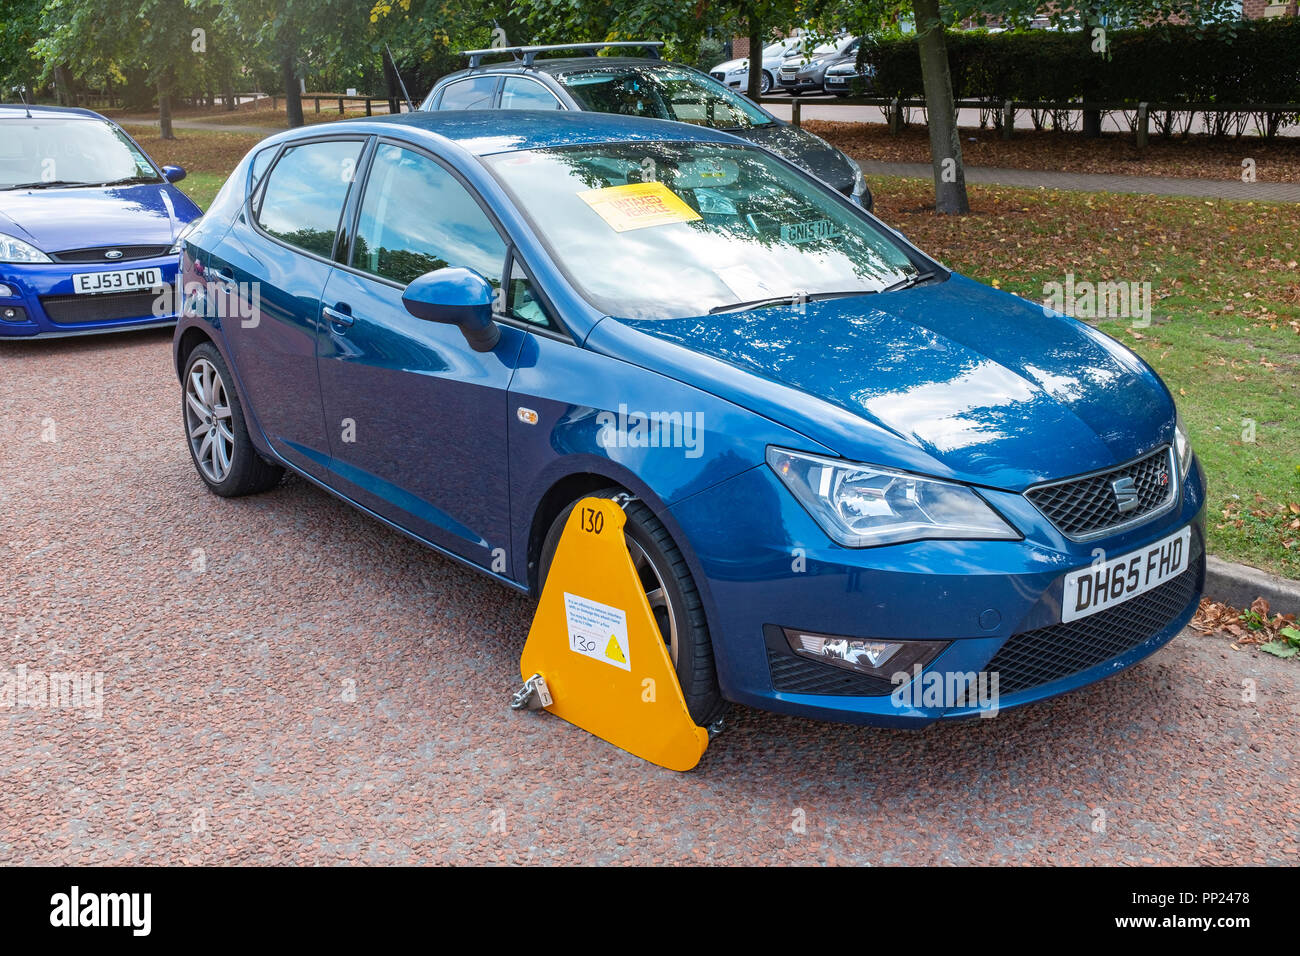 Clamped untaxed vehicle in Crewe Cheshire UK - Stock Image